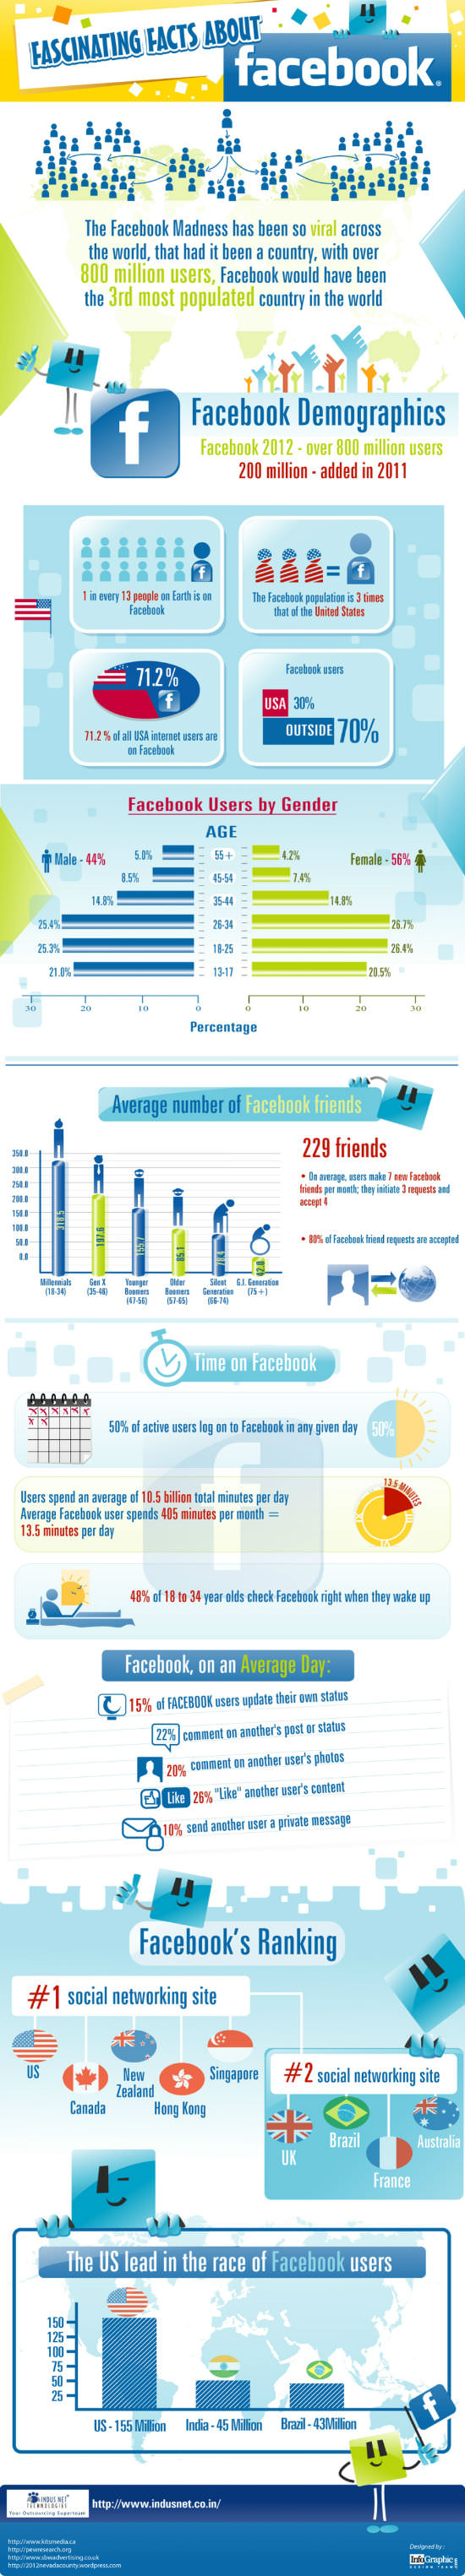 infographic-facebook-facts-w550